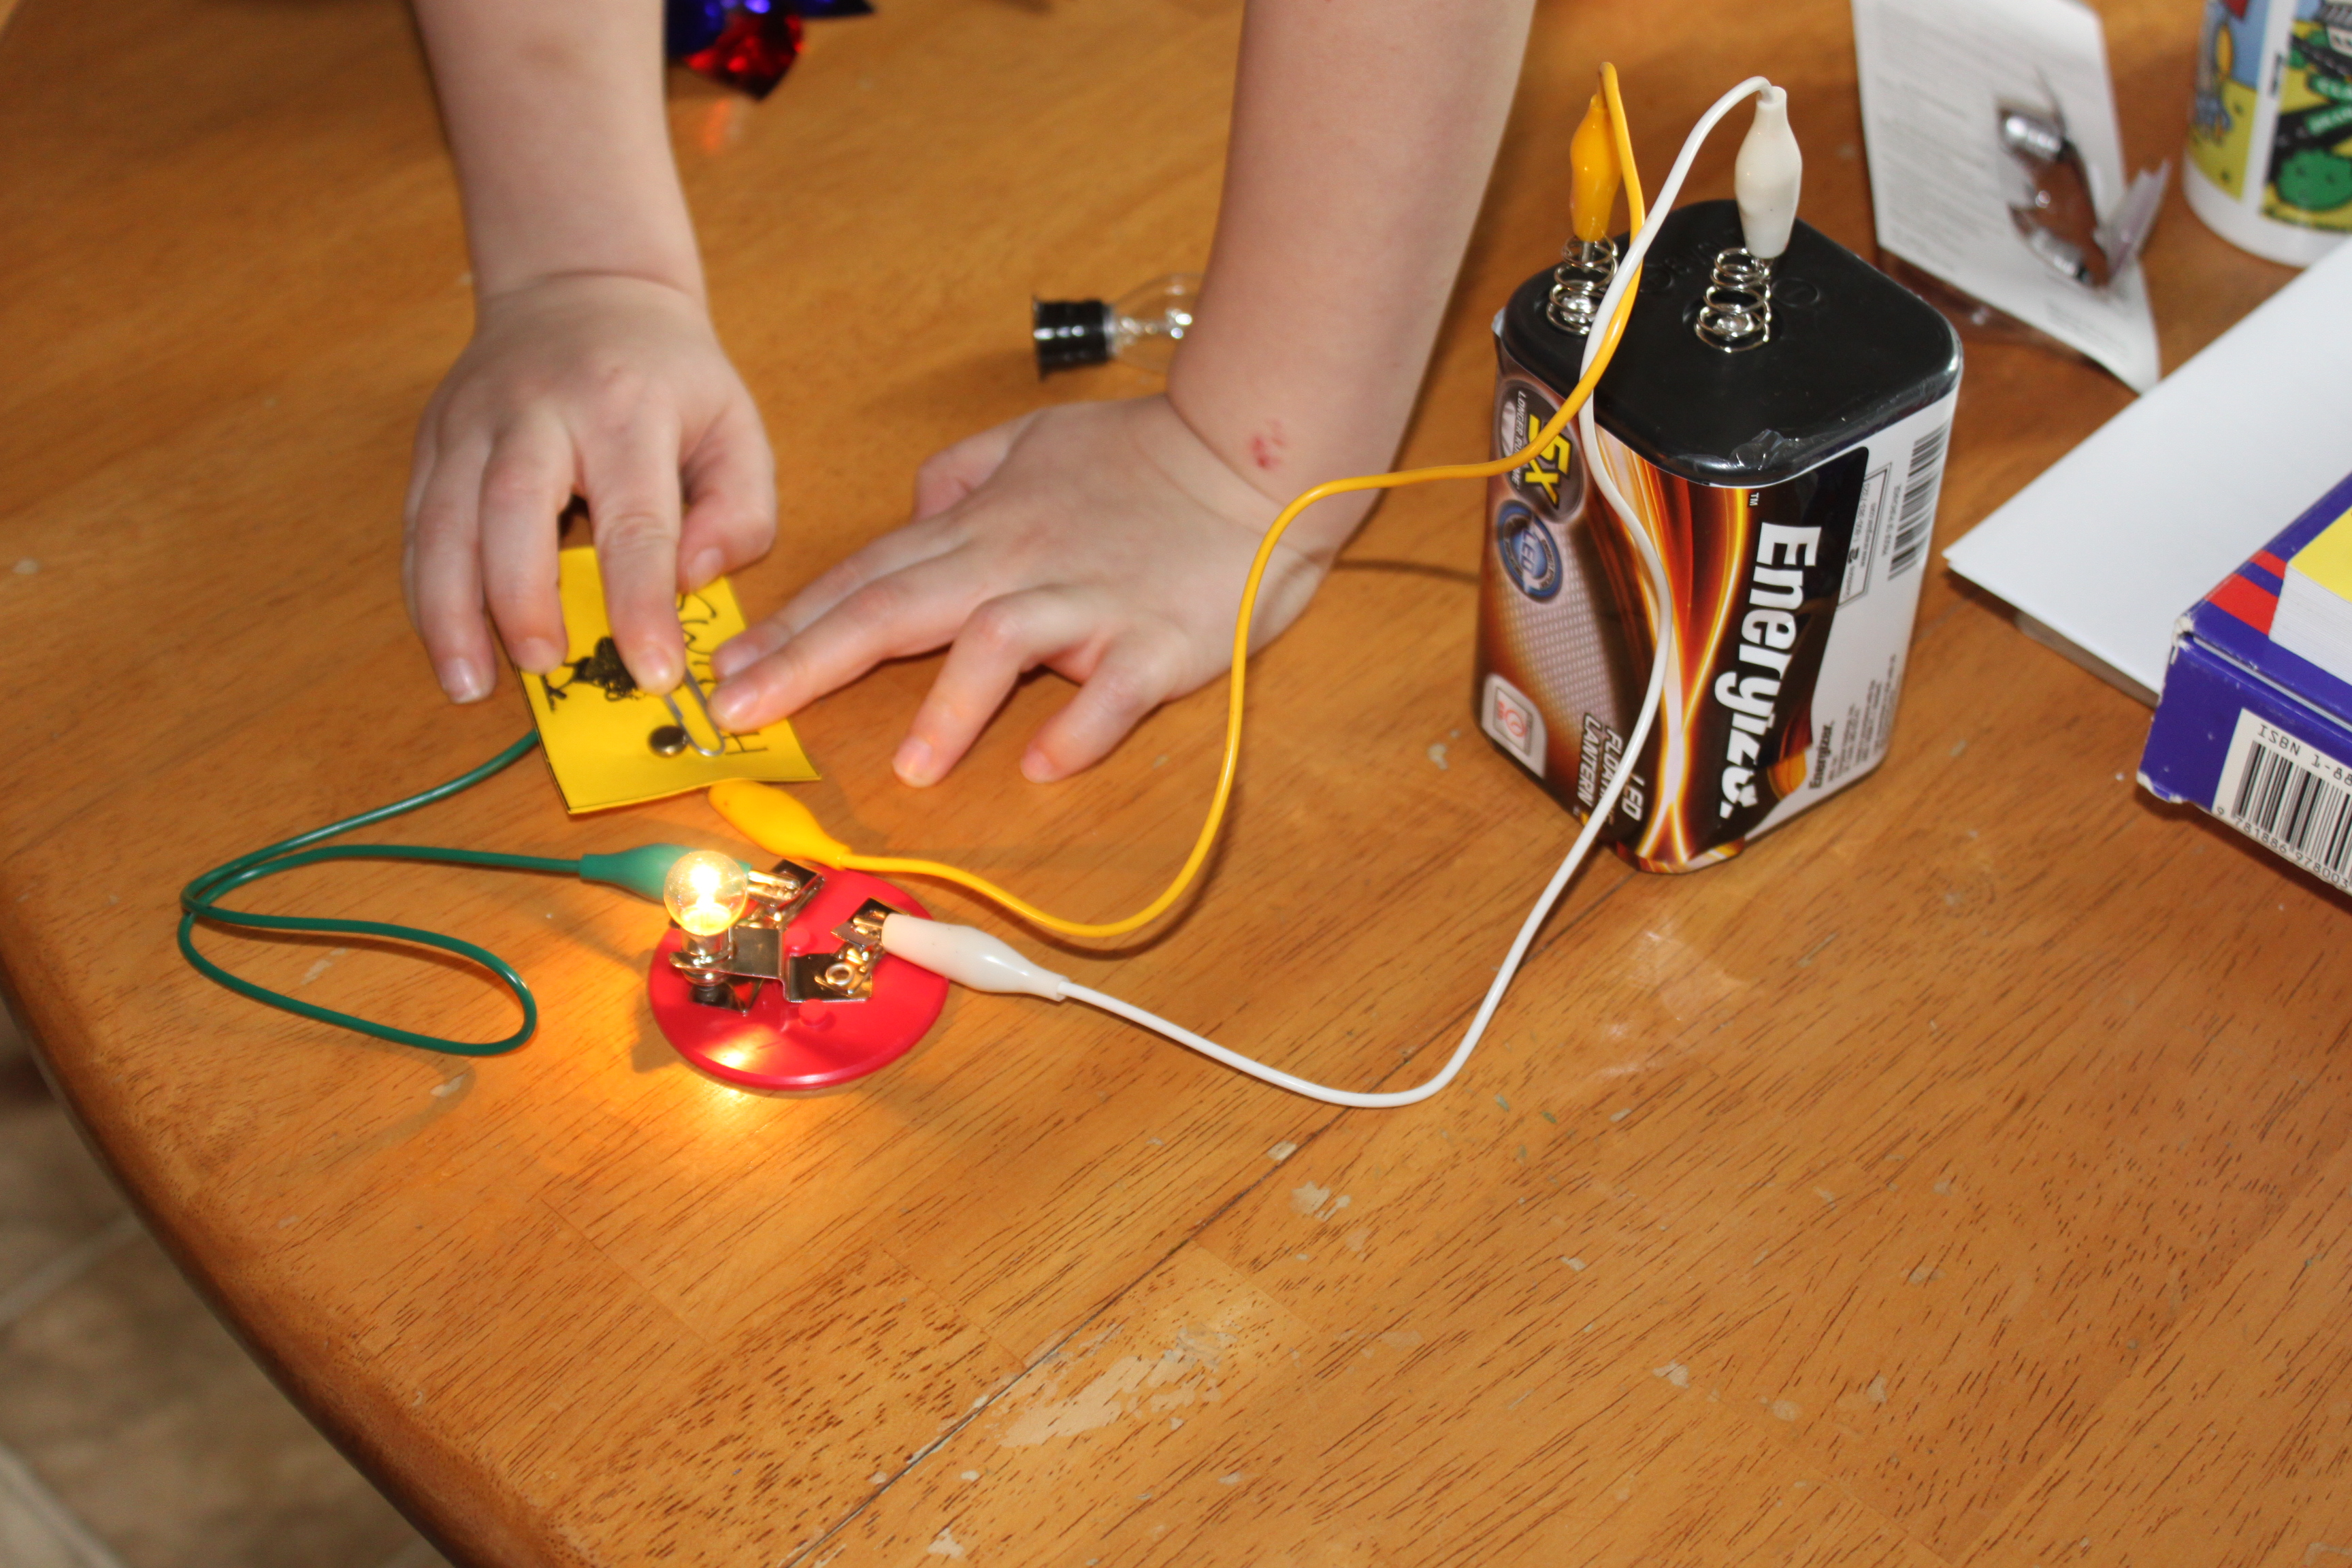 Electricity Experiments For Kids Frugal Fun Boys And Girls Simple Circuit Diagram Ks1 To Make A You Need Copper Wire 6 Volt Lantern Battery Alligator Clips Lightbulb